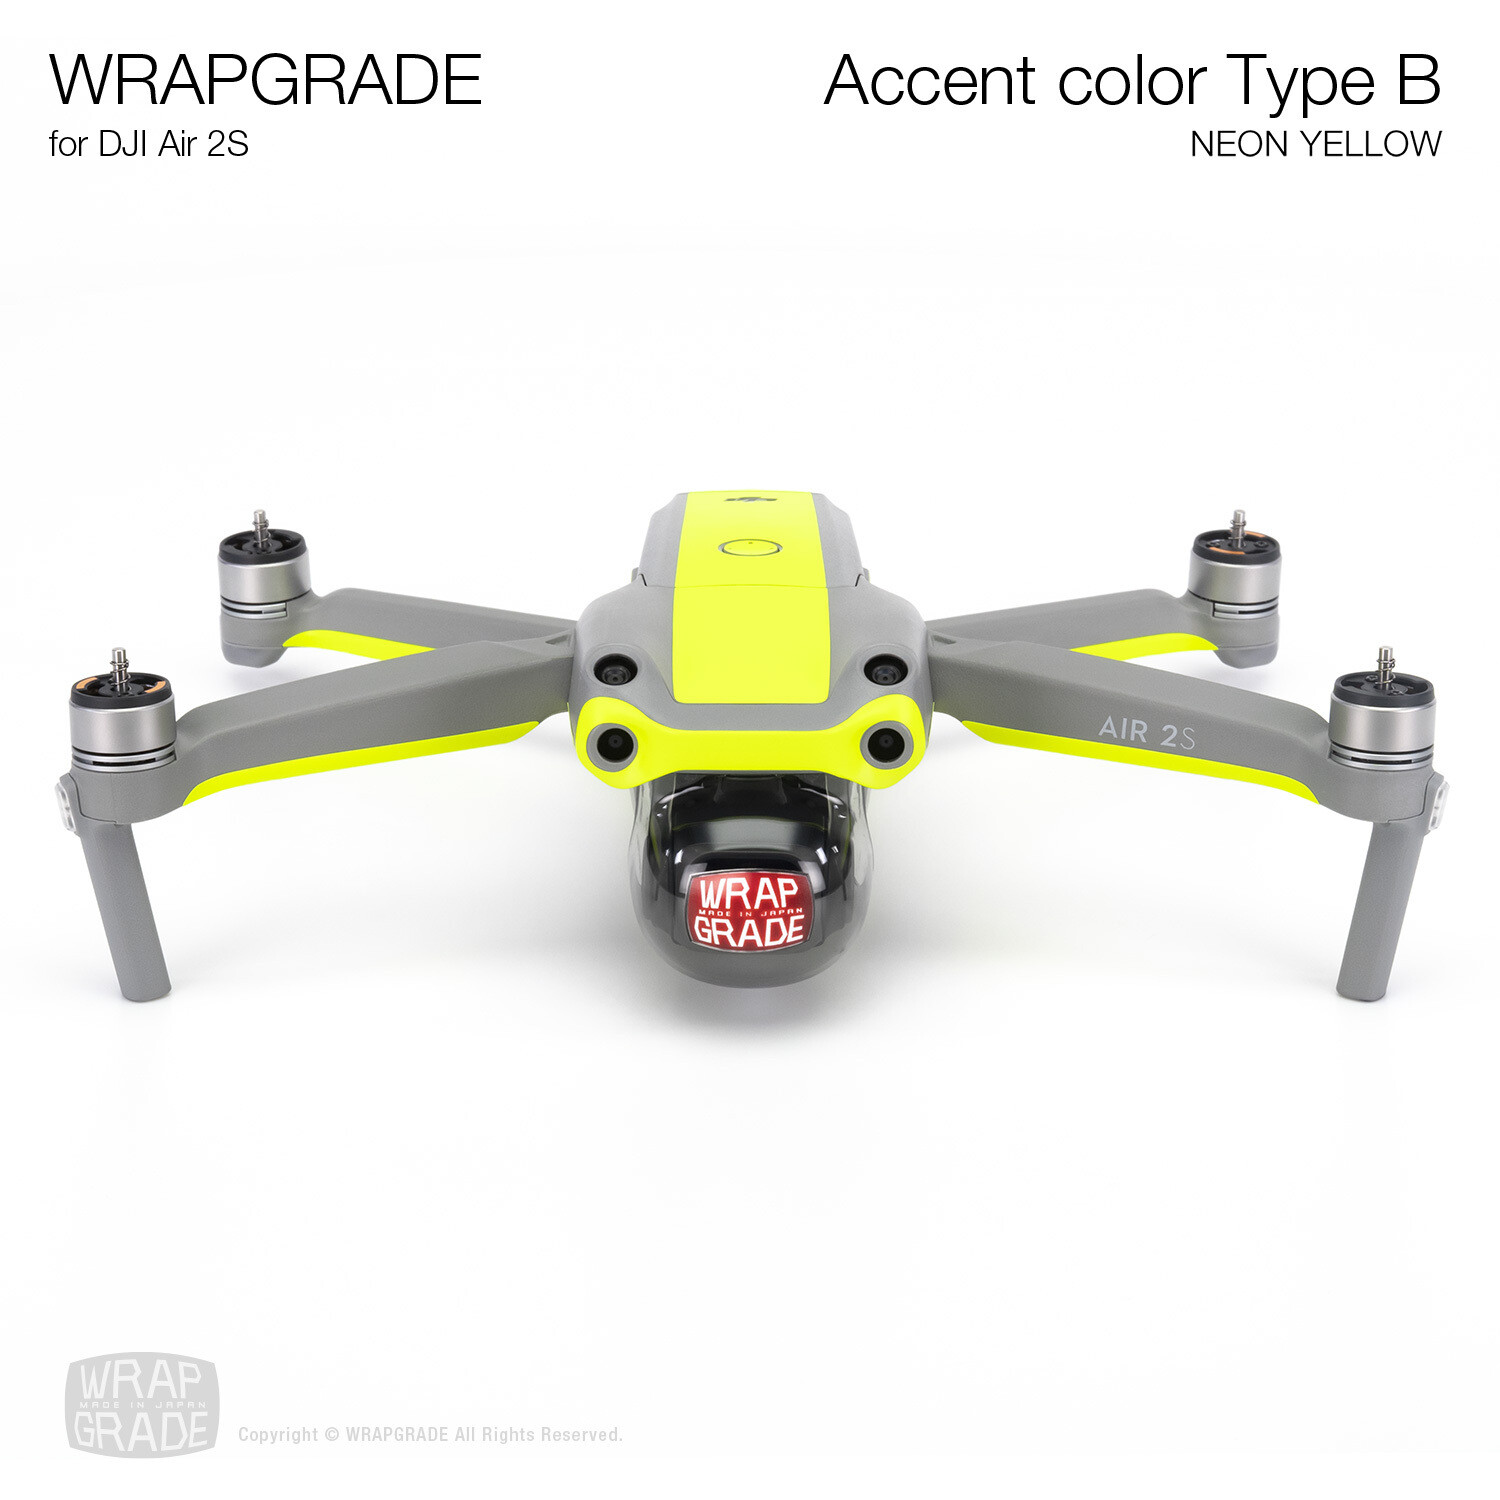 Wrapgrade Skin for DJI Air 2S | Accent Color B (NEON YELLOW)